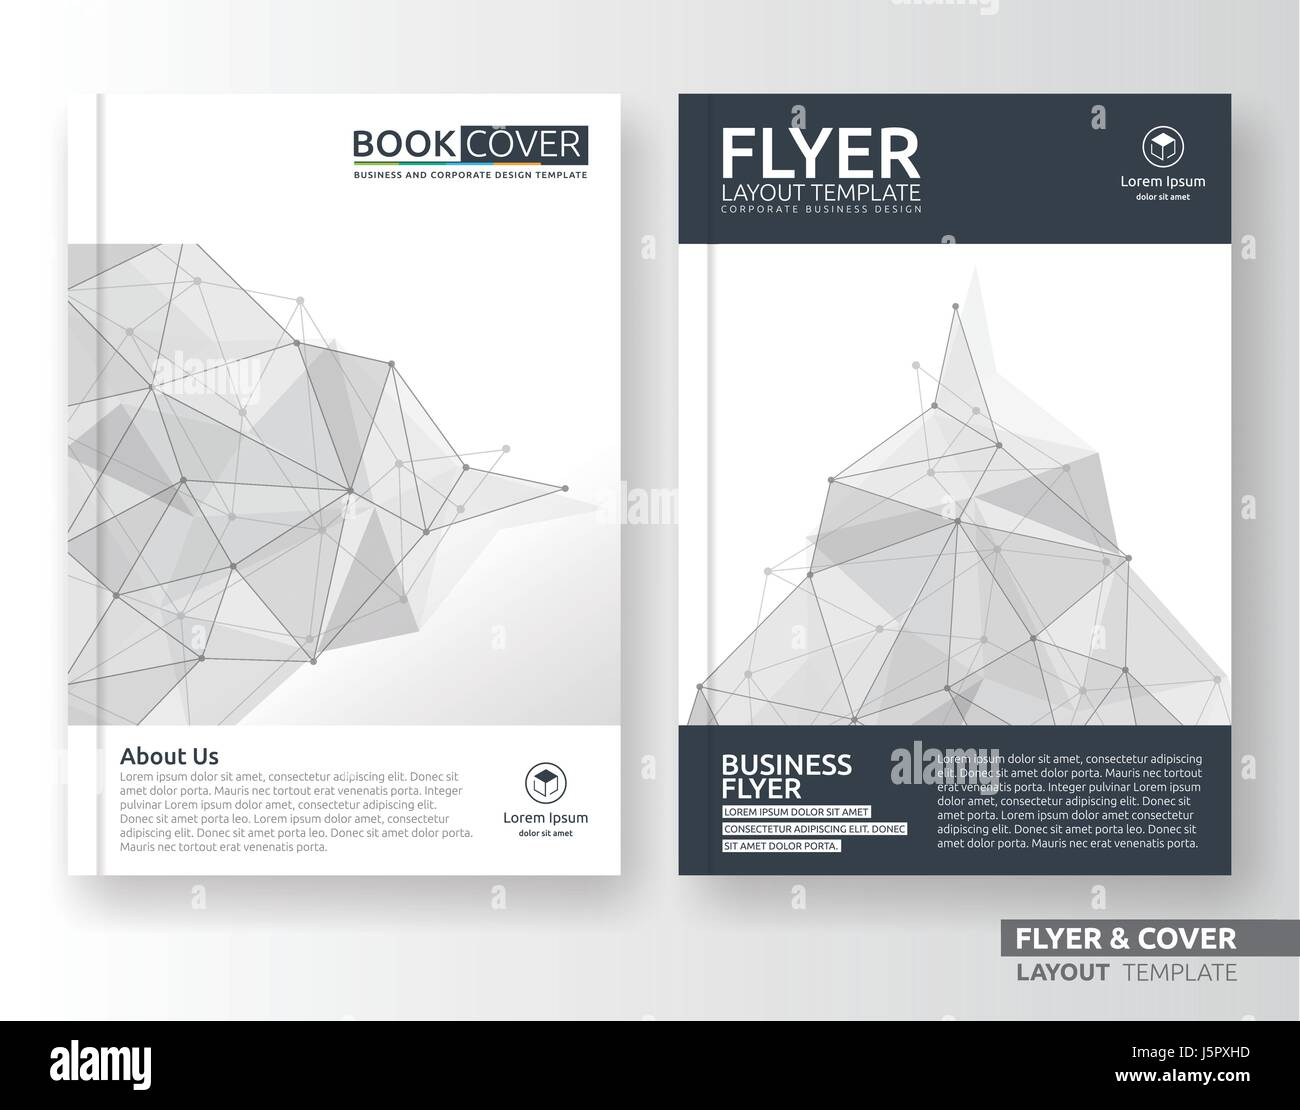 Book Cover Design Hd ~ Multipurpose corporate business flyer layout design suitable for